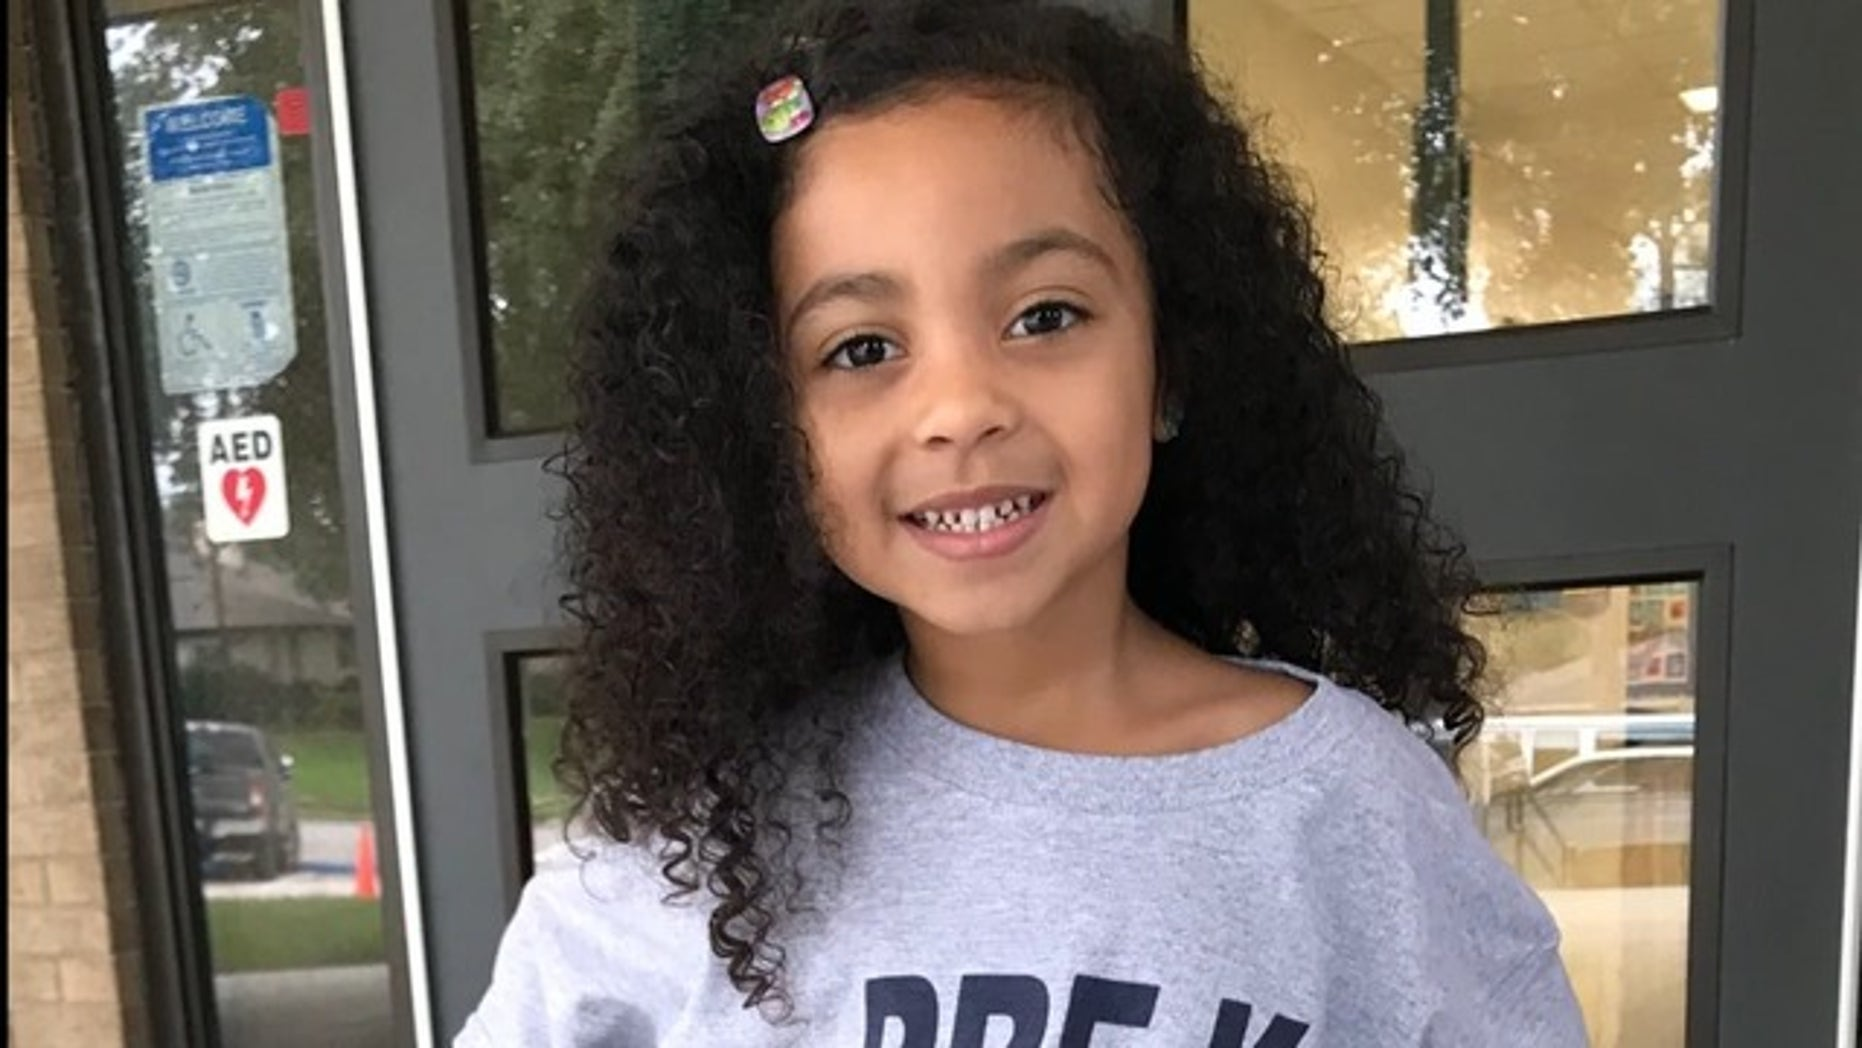 Ashanti Grinage had started showing symptoms of a cold on Sunday, but did not develop a fever until Tuesday, her family said.